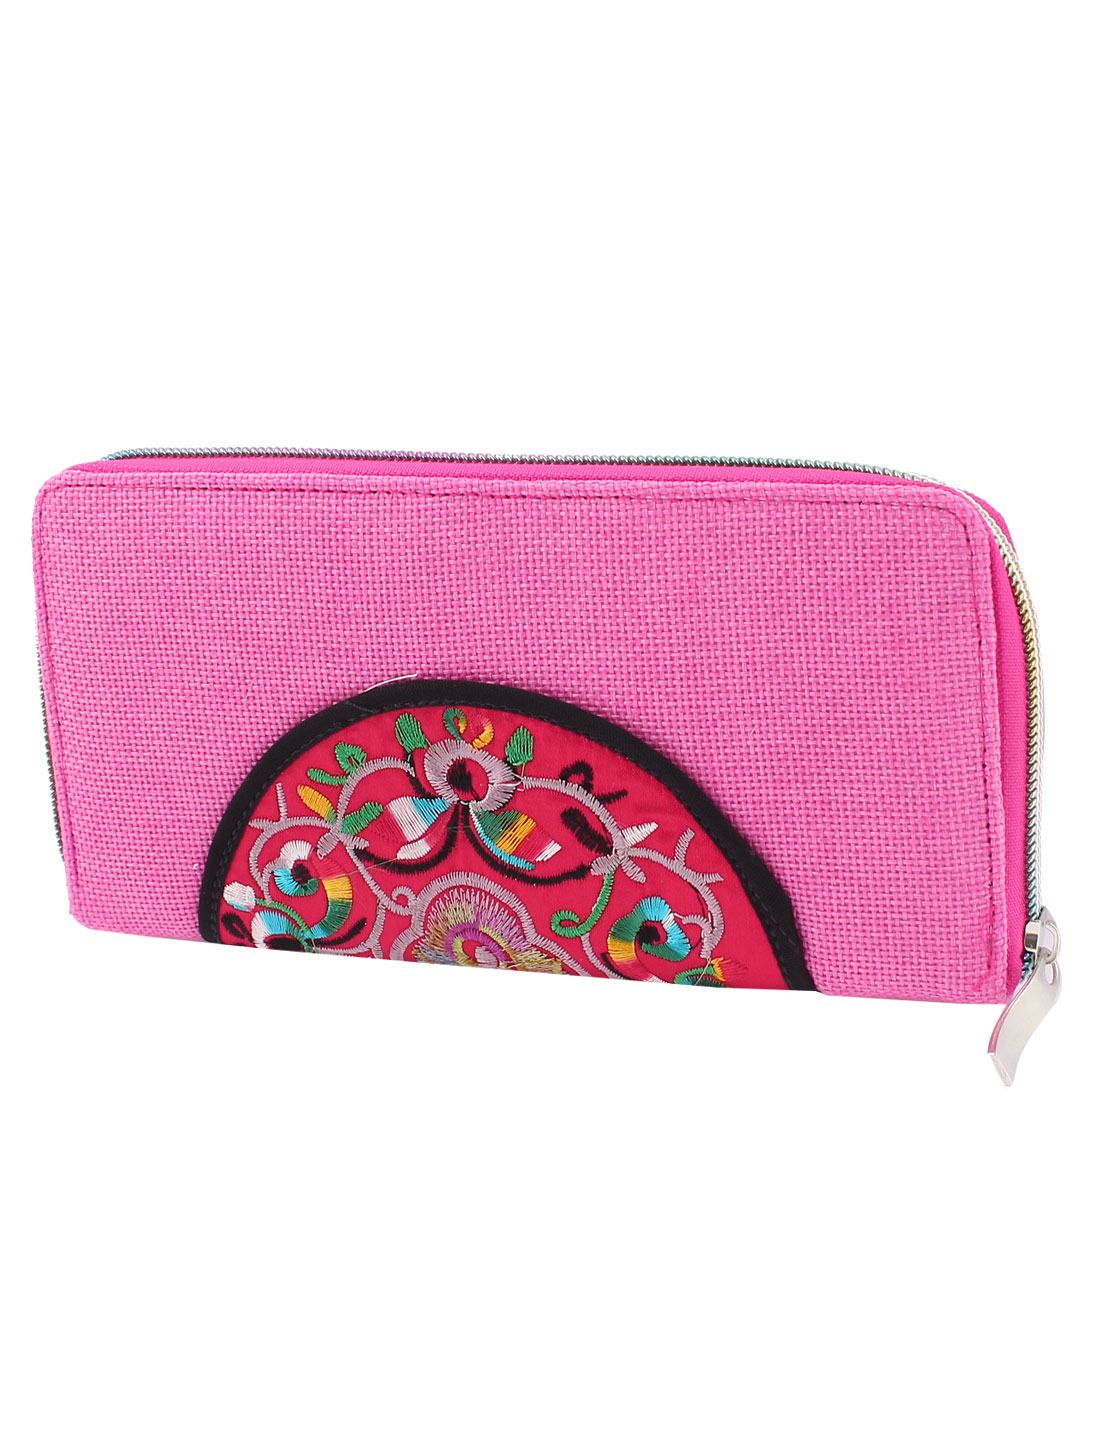 Pink Linen Rectangle Design Floral Pattern Zipper Closure Wallet Purse for Ladies